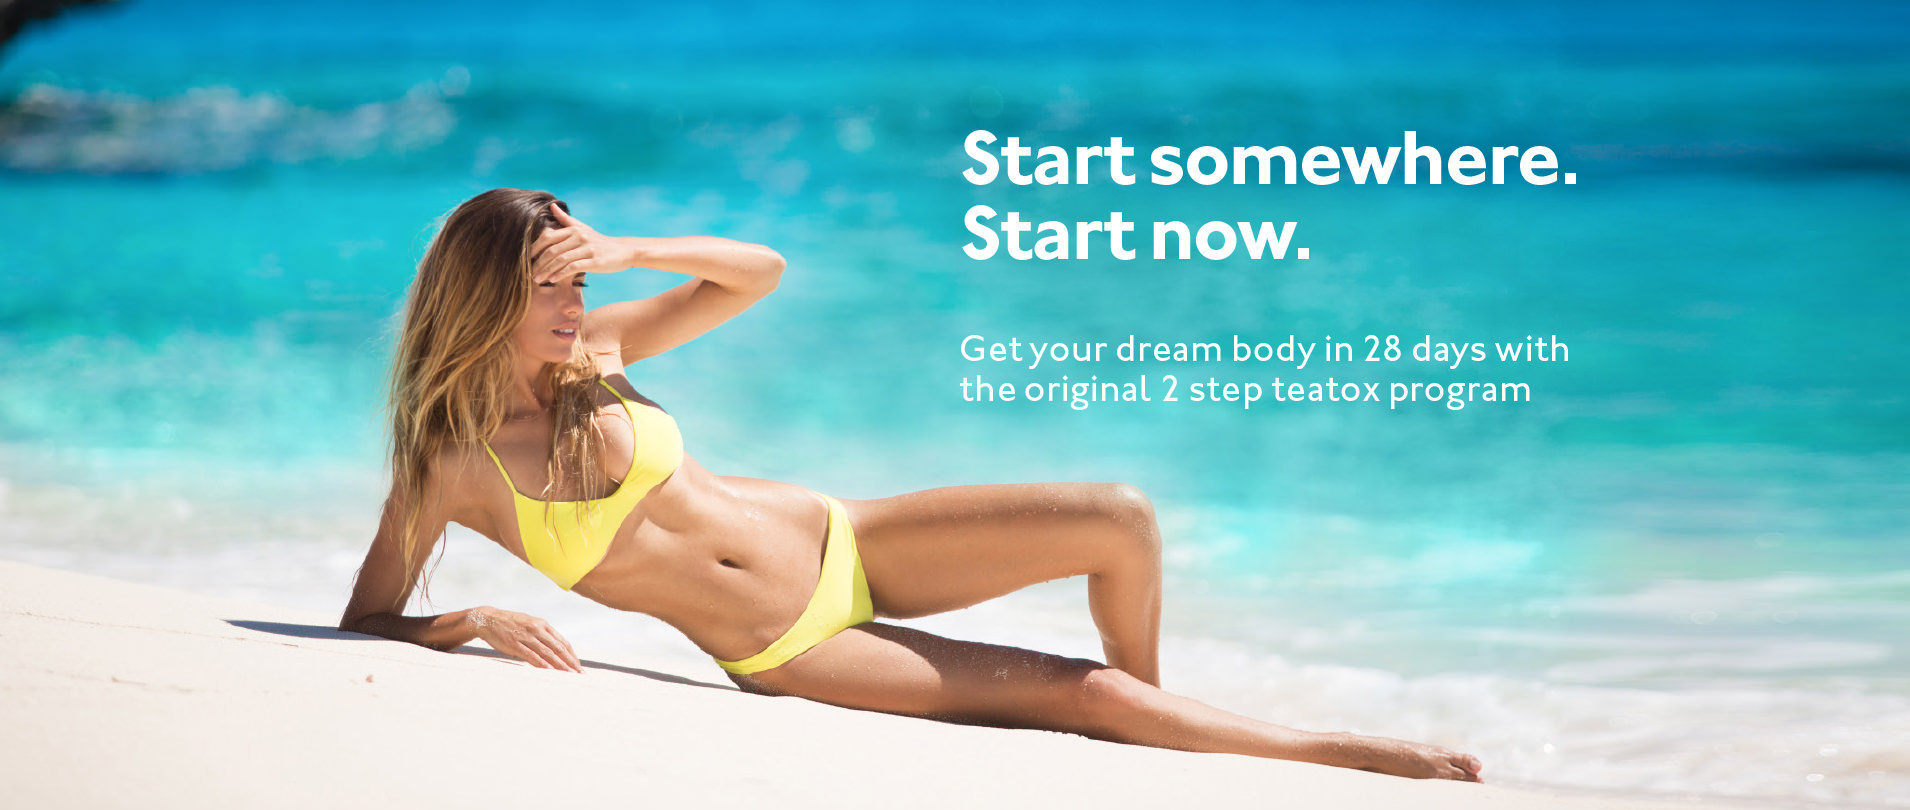 SkinnyMint is the original two step teatox program